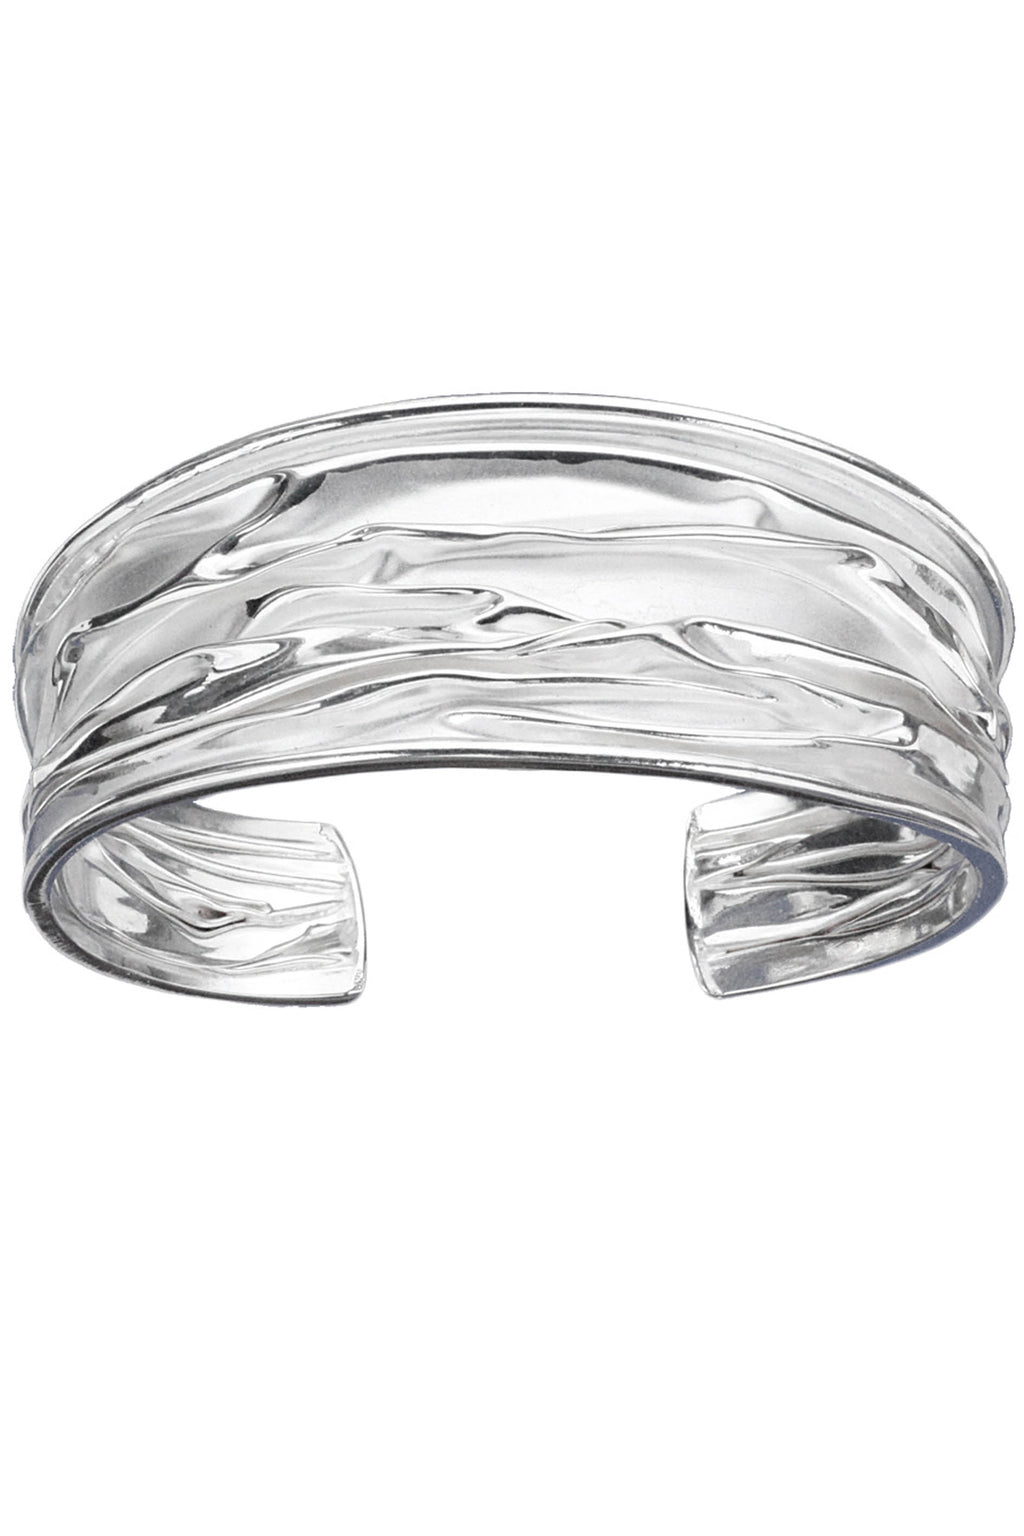 Creased Silver Cuff Bangle / Nina B Jewellery